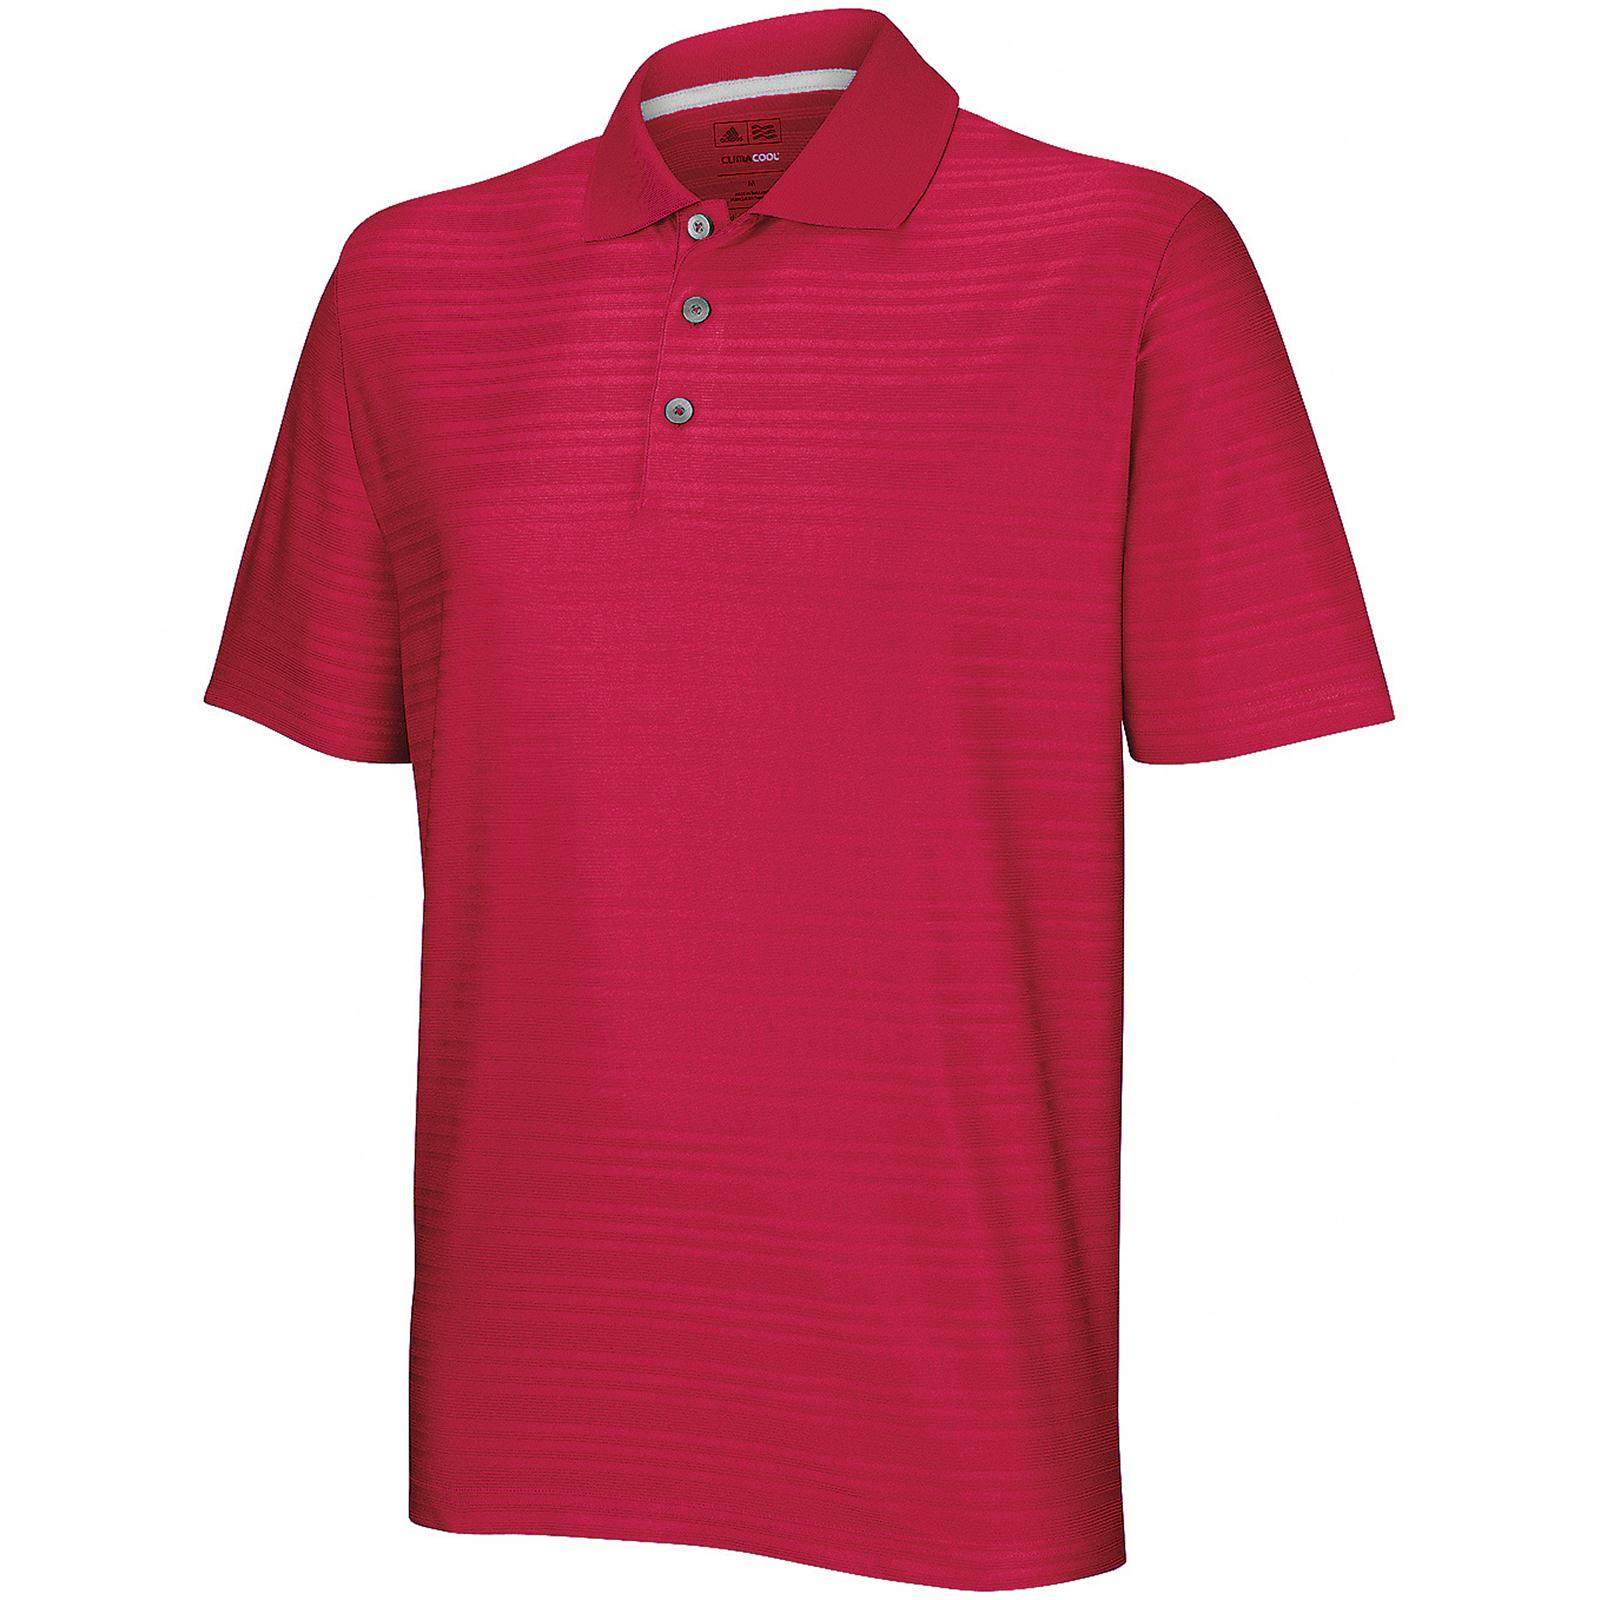 New Adidas Golf Mens Sports Climacool Textured Solid Polo